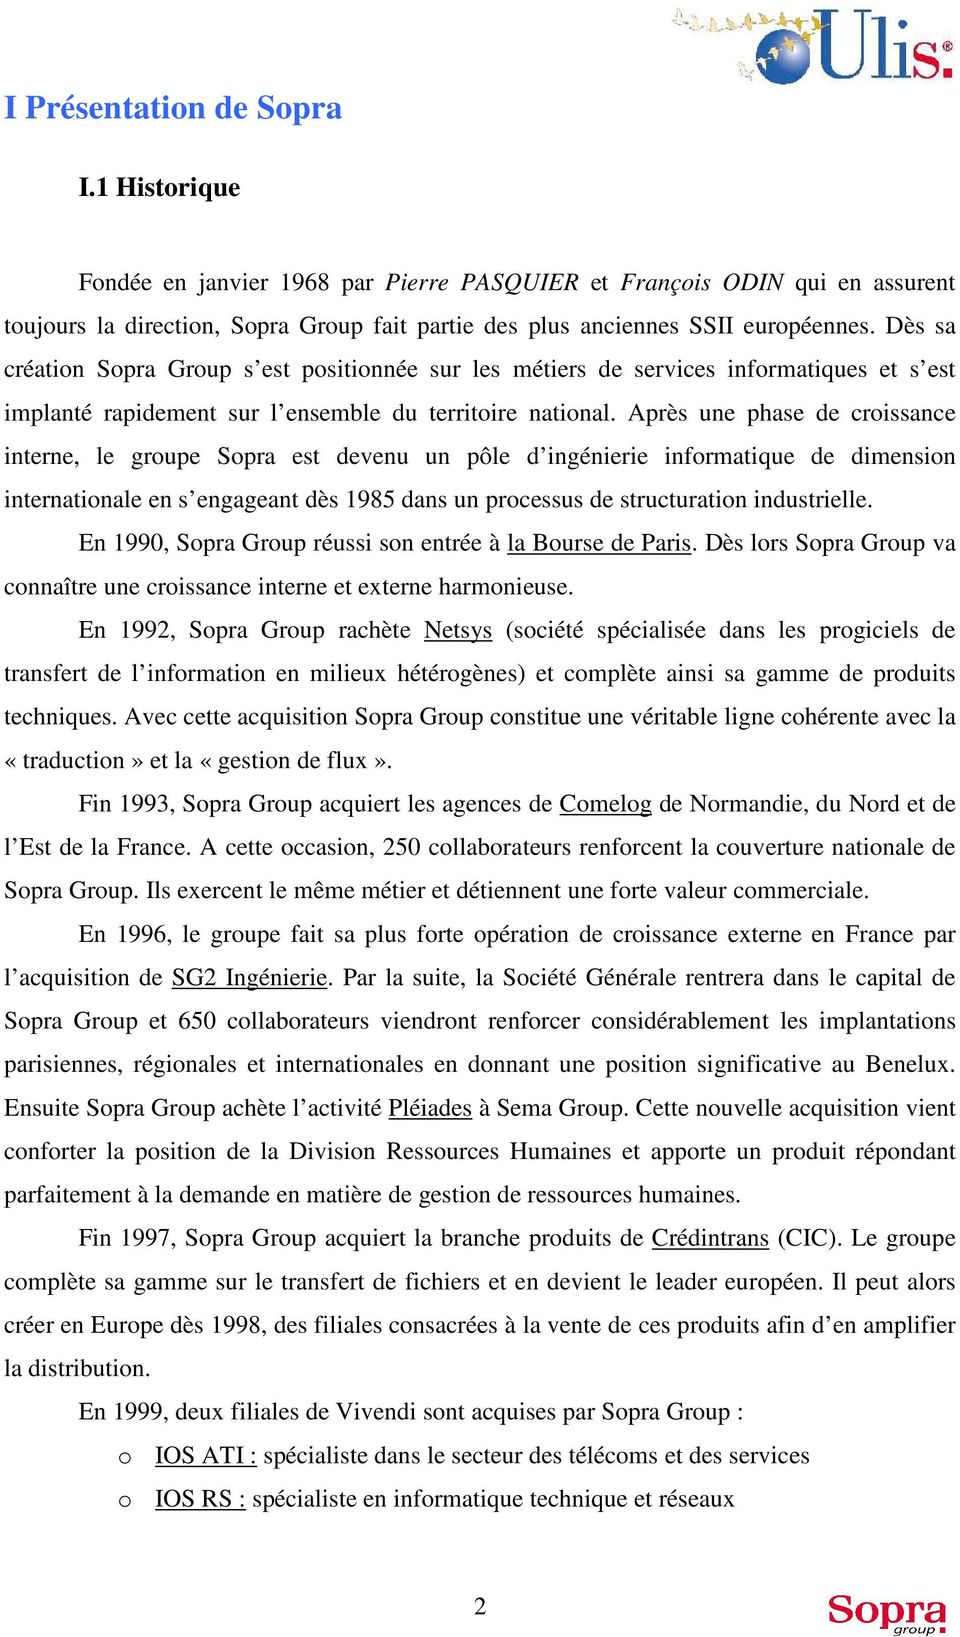 Après une phase de croissance interne, le groupe Sopra est devenu un pôle d ingénierie informatique de dimension internationale en s engageant dès 1985 dans un processus de structuration industrielle.